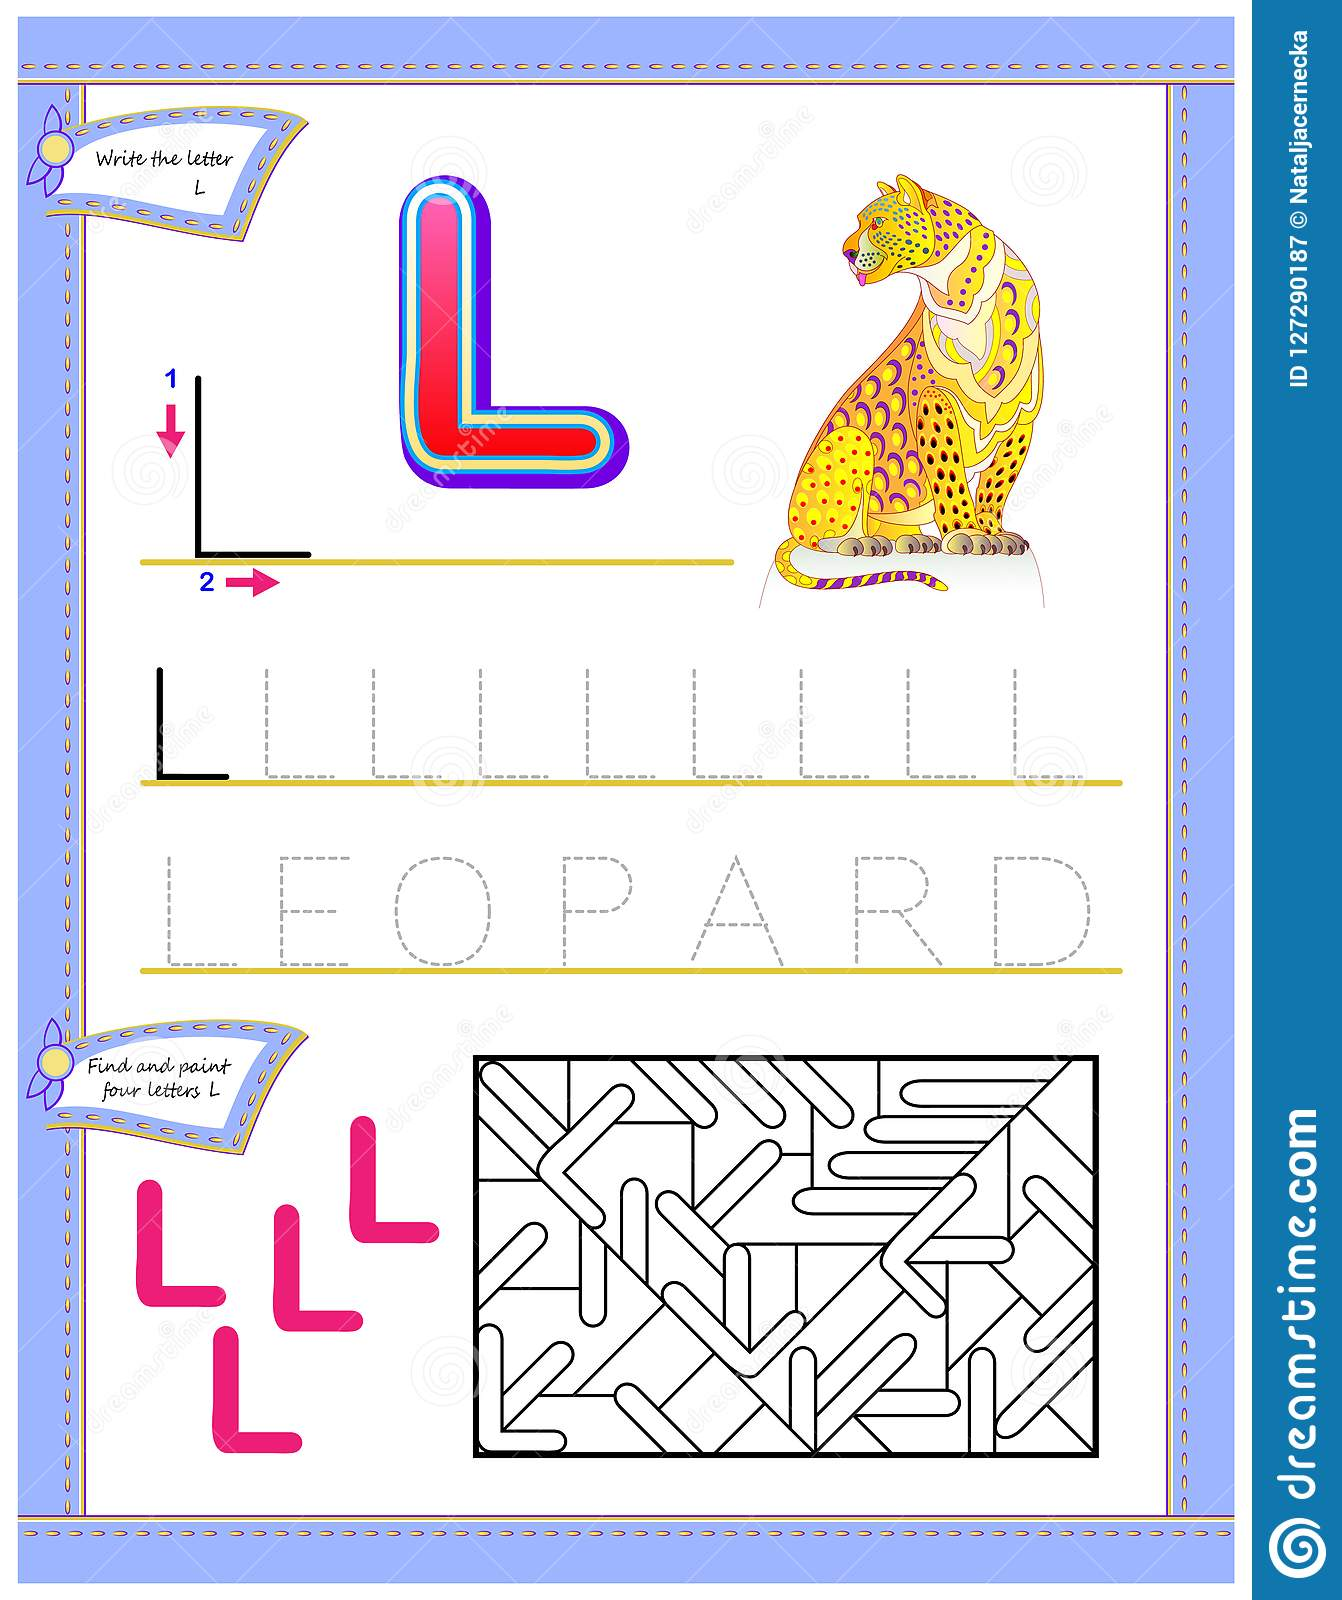 Worksheet For Kids With Letter L For Study English